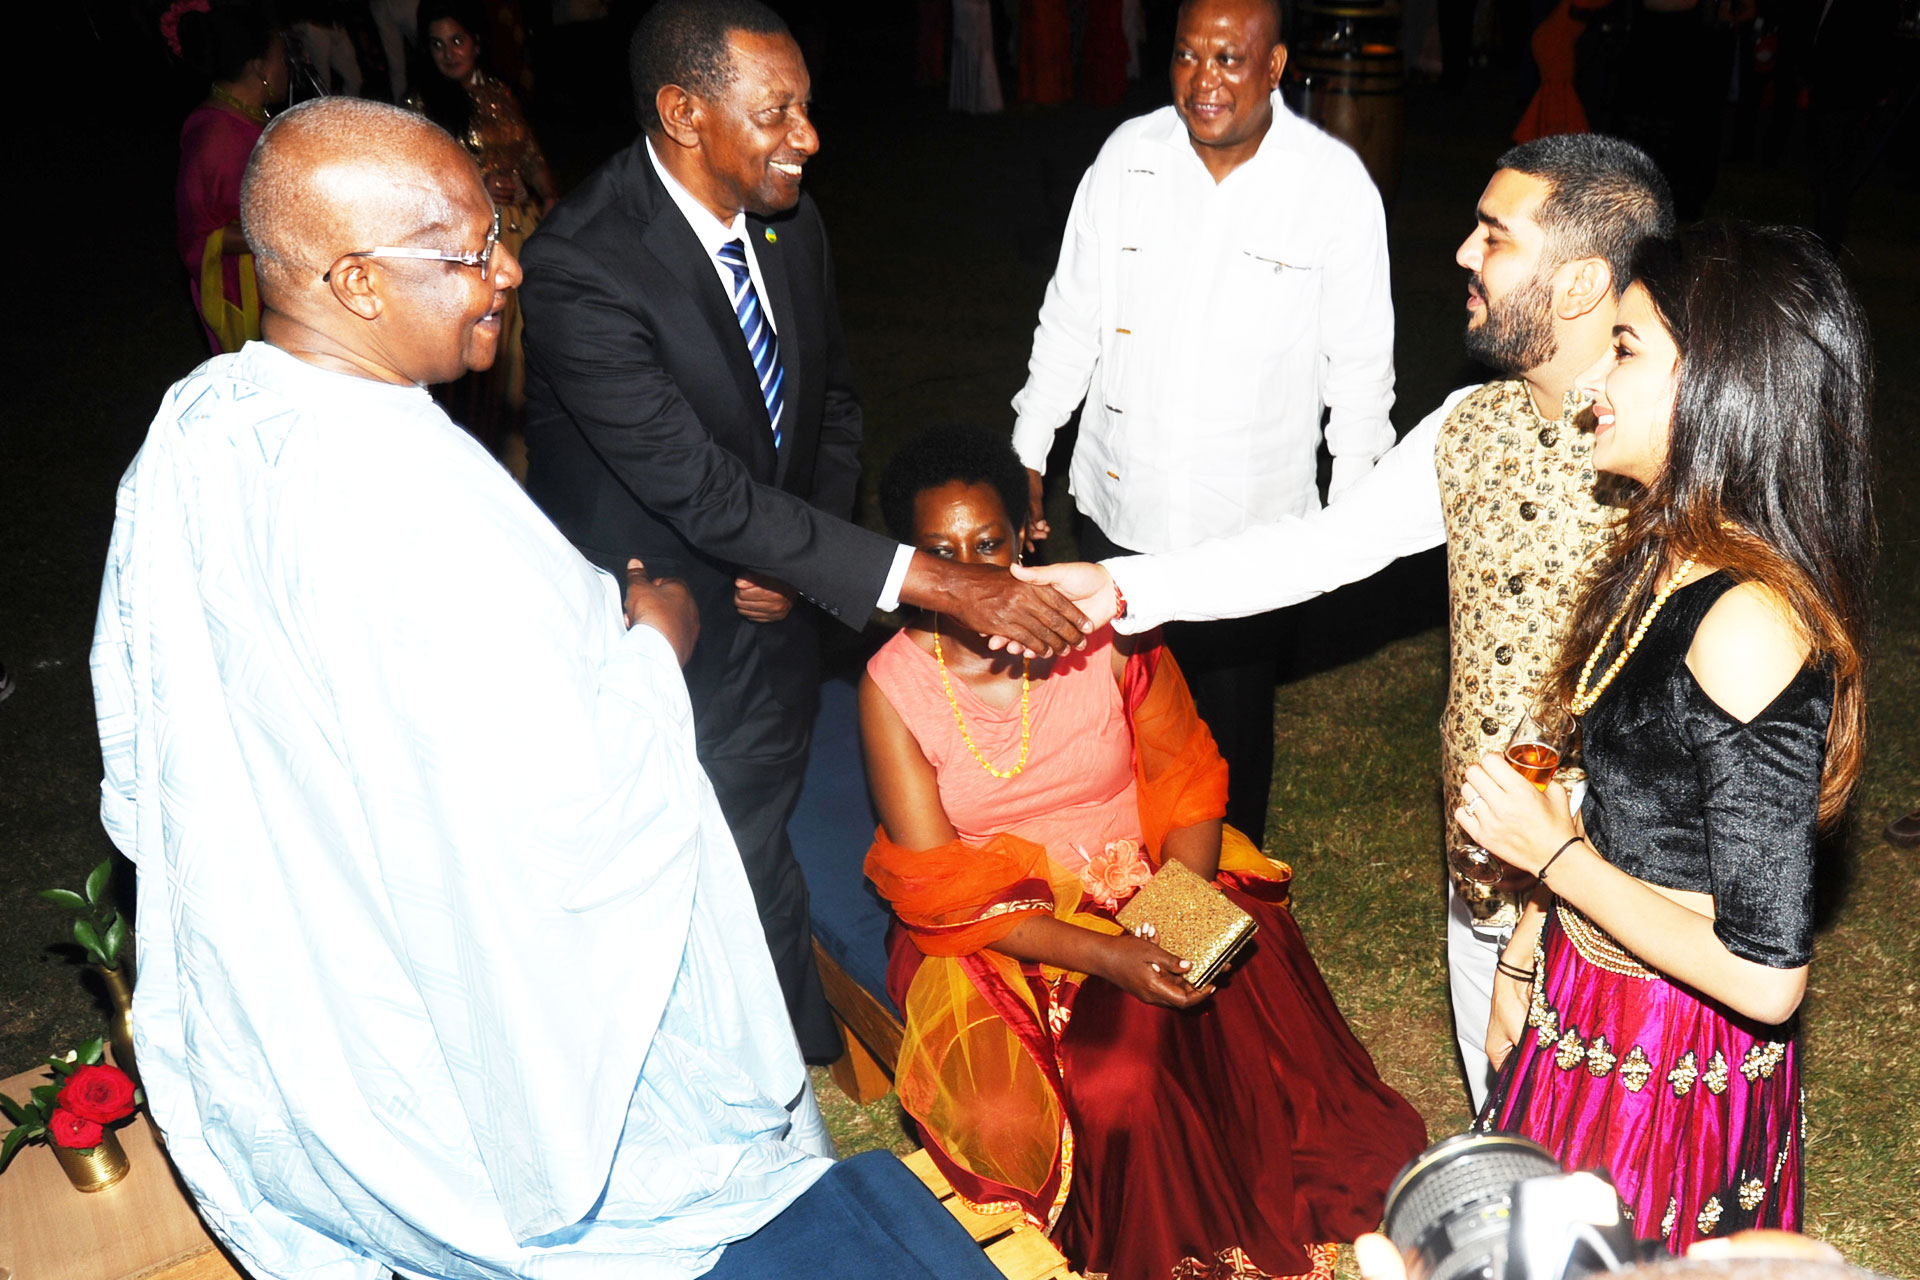 Foreign Foreign affairs minister for Uganda at Rajiv Ruparelia's wedding anniversary